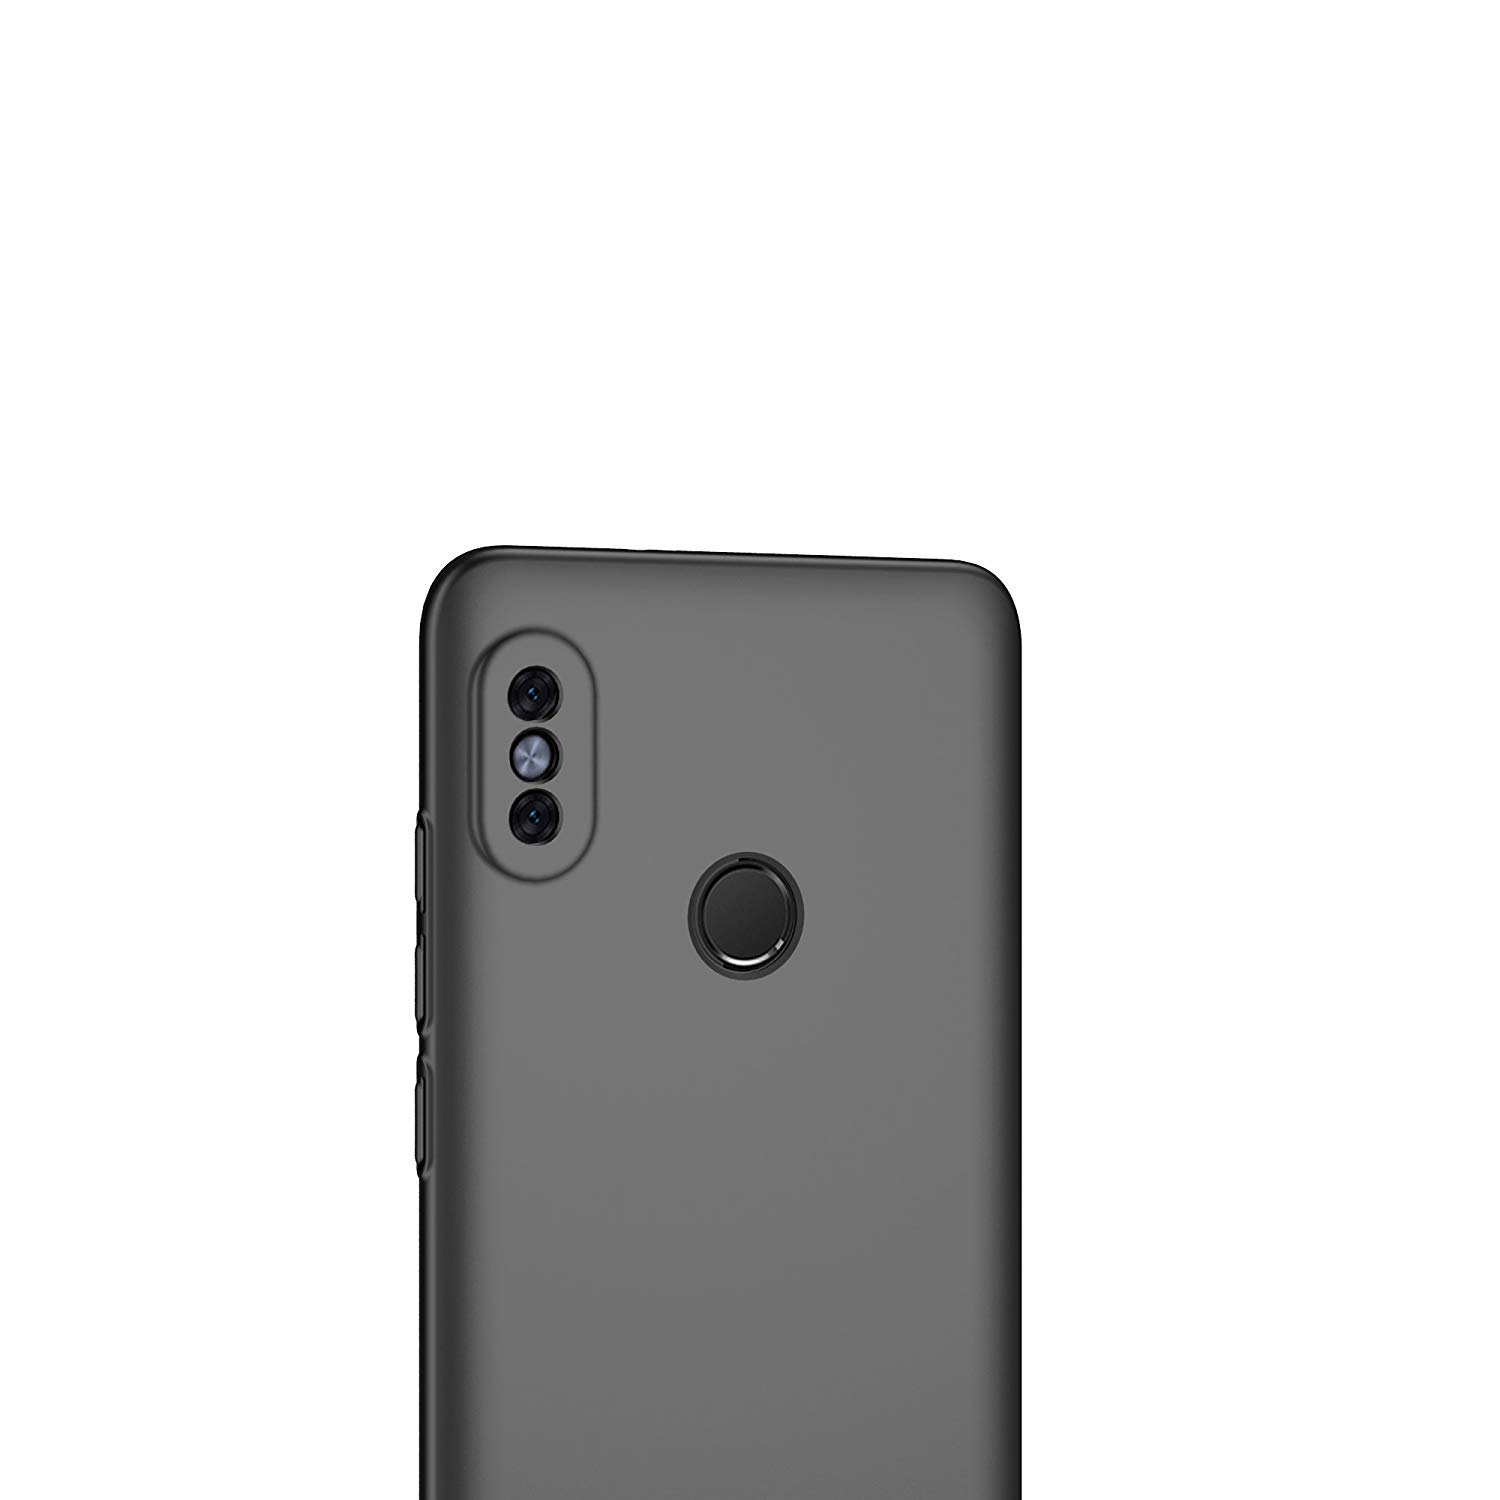 GeekerChip Funda Xiaomi Redmi Note 5 [Serie Colorida] [Ultra Delgado] [Anti-Drop] ultrafin Premium Carcasa para Xiaomi Redmi Note 5 (Negro): Amazon.es: ...